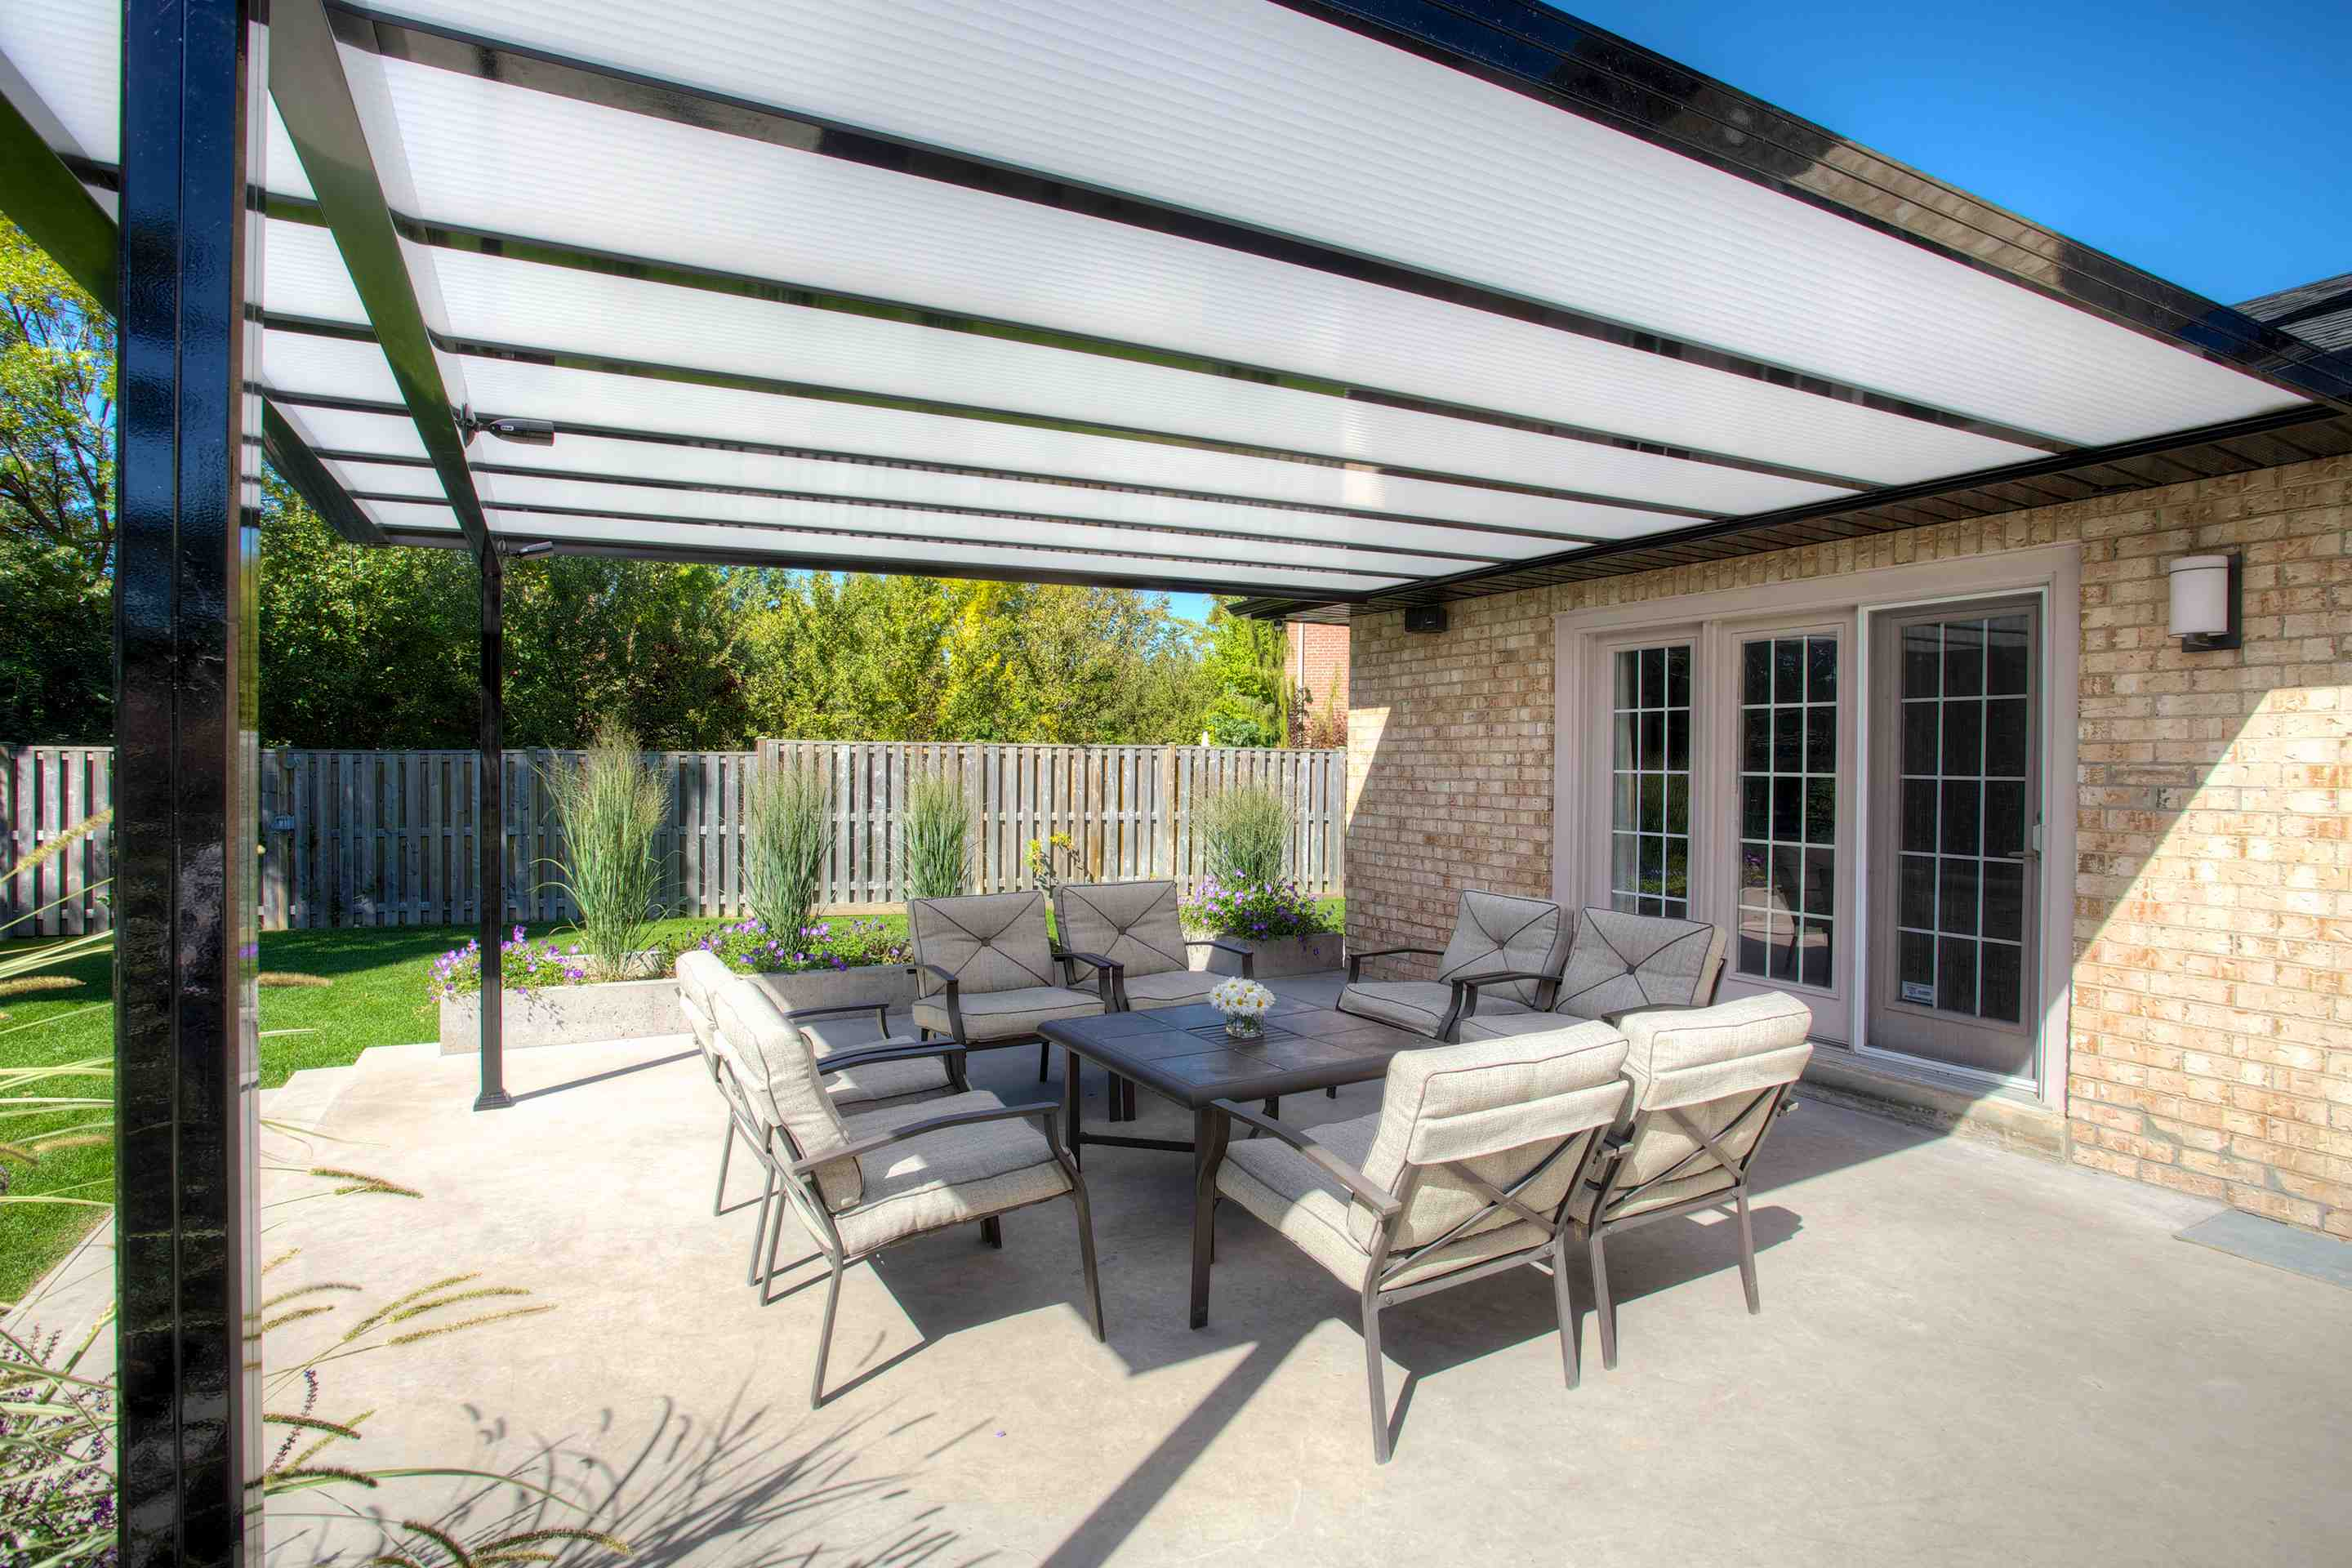 patio covers, deck covering options, patio cover buffalo, new york patio enclosures, patio coverings in usa